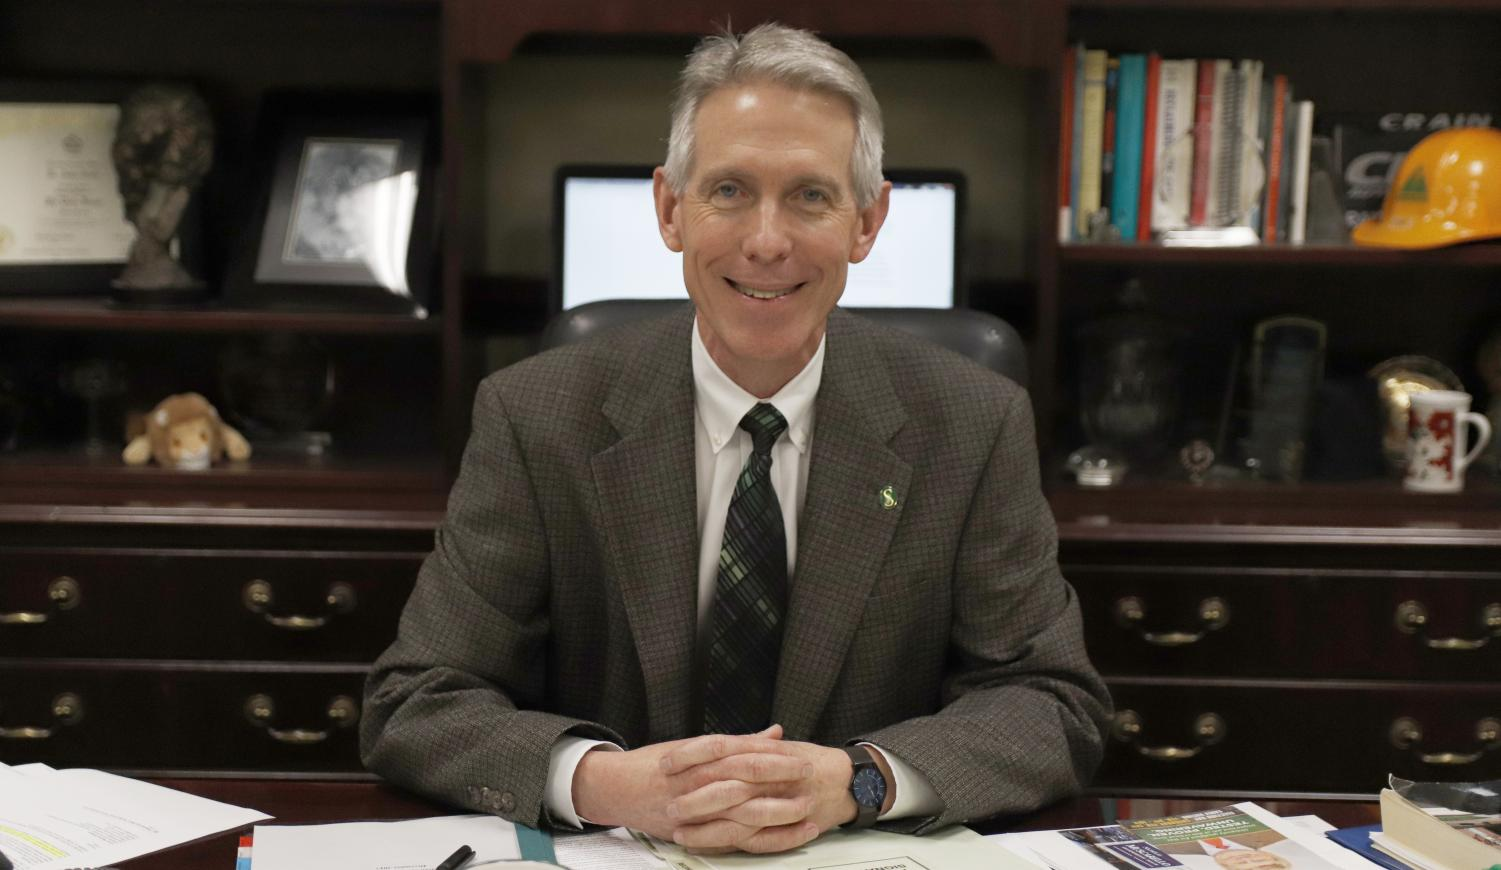 About 10 years ago, on Feb. 17, 2009, Dr. John Crain became the president of the university. From faculty member for the College of Business to interim provost, Crain has served the university for 32 years.